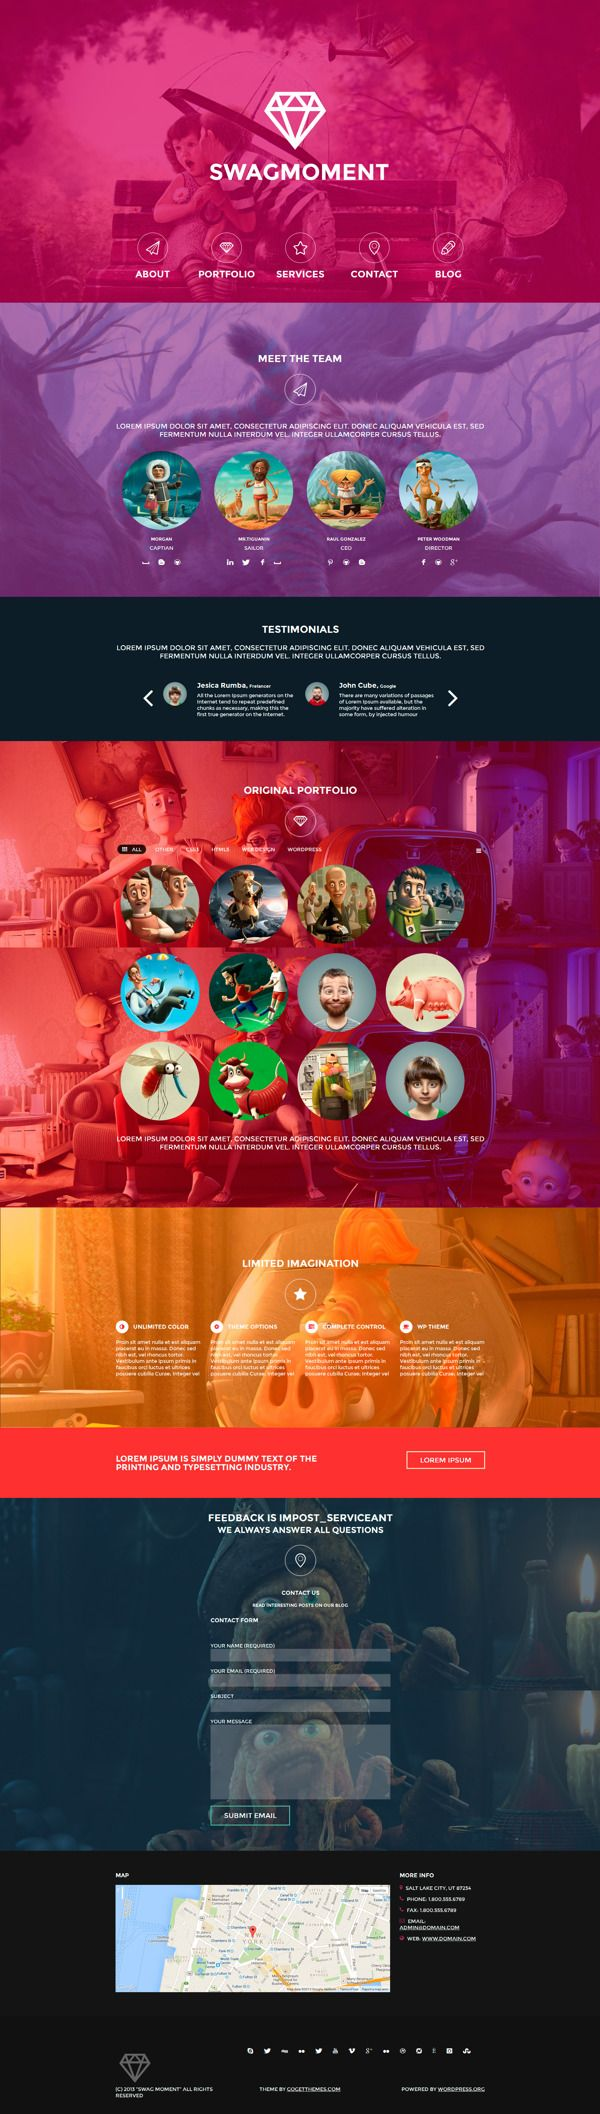 SwagMoment WordPress Theme on Behance